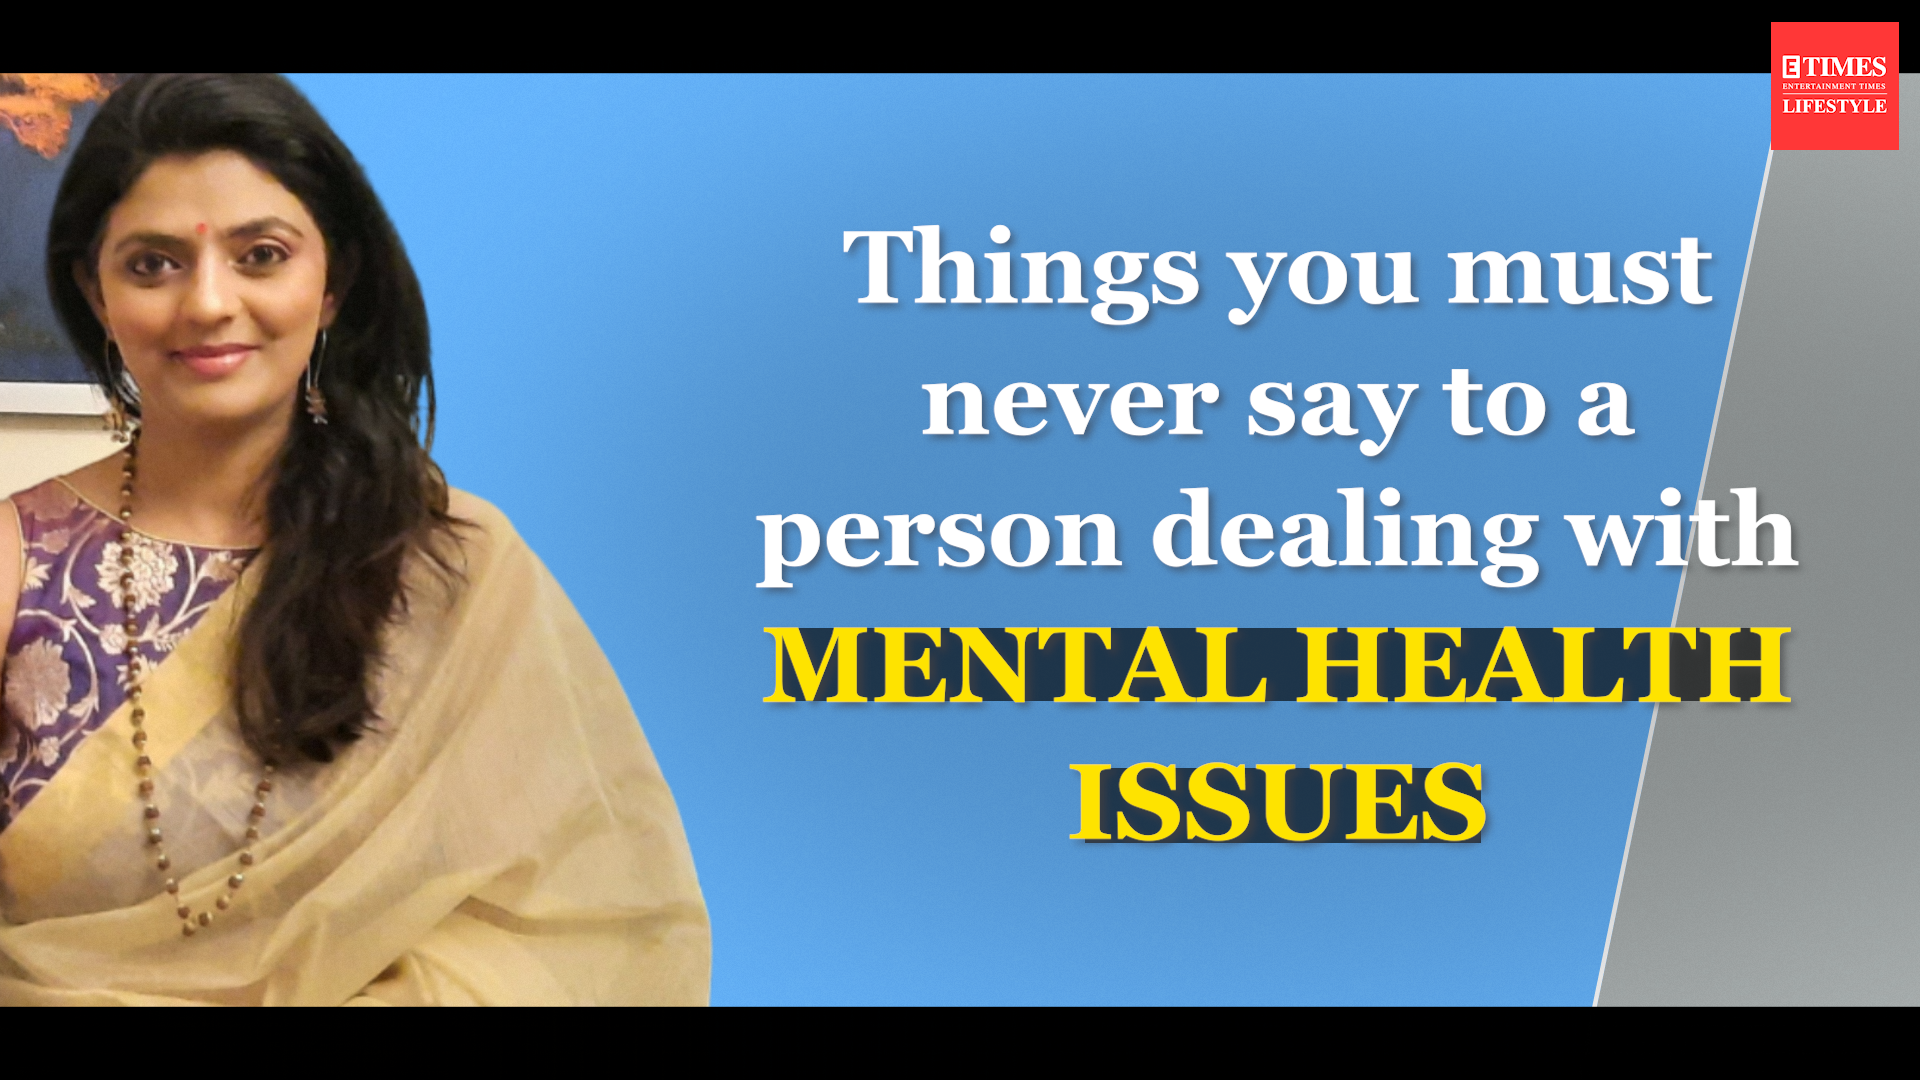 lifelineseries-things-you-must-never-say-to-a-person-dealing-with-mental-health-issues